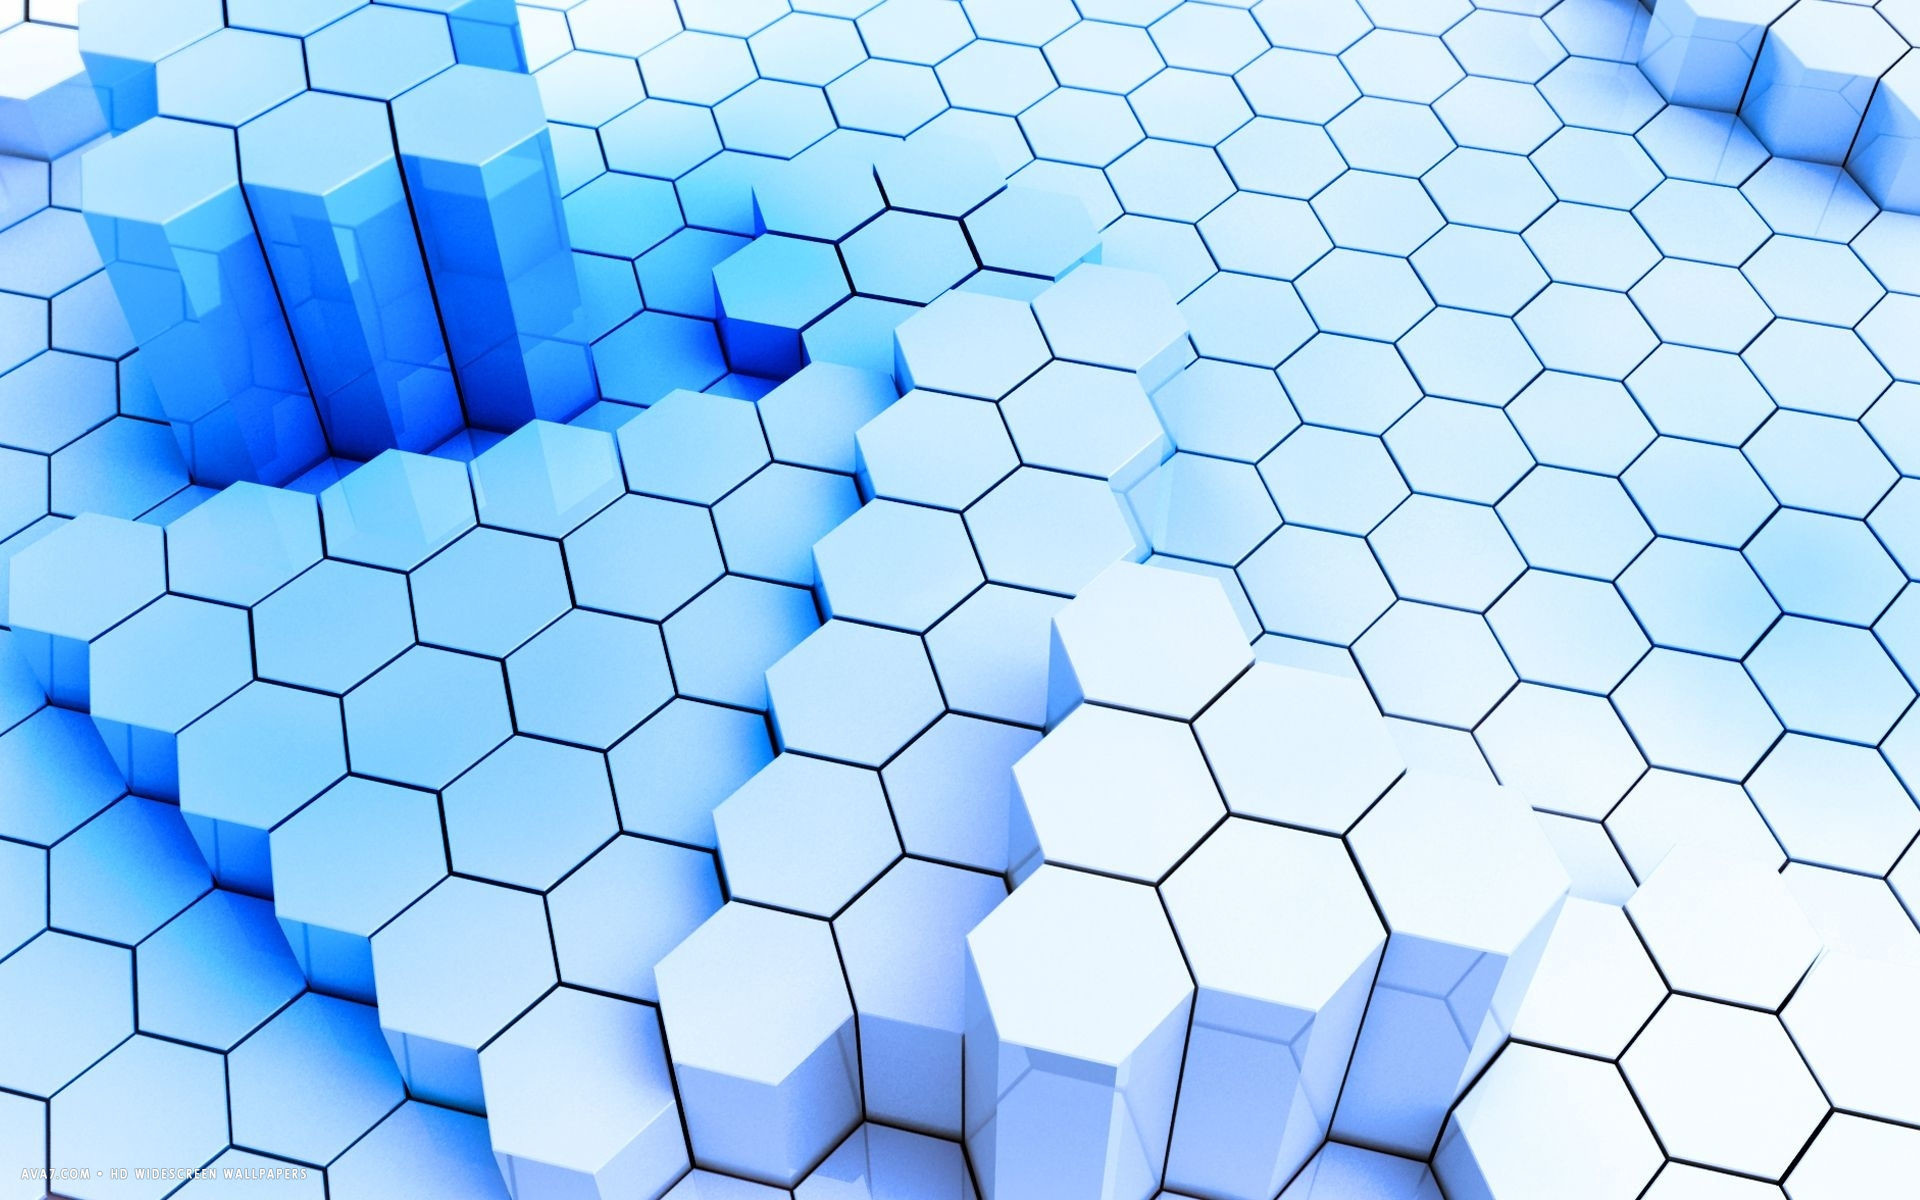 hexagons honeycomb mesh blue deformed hd widescreen wallpaper and desktop  backgrounds for your computer or tablet